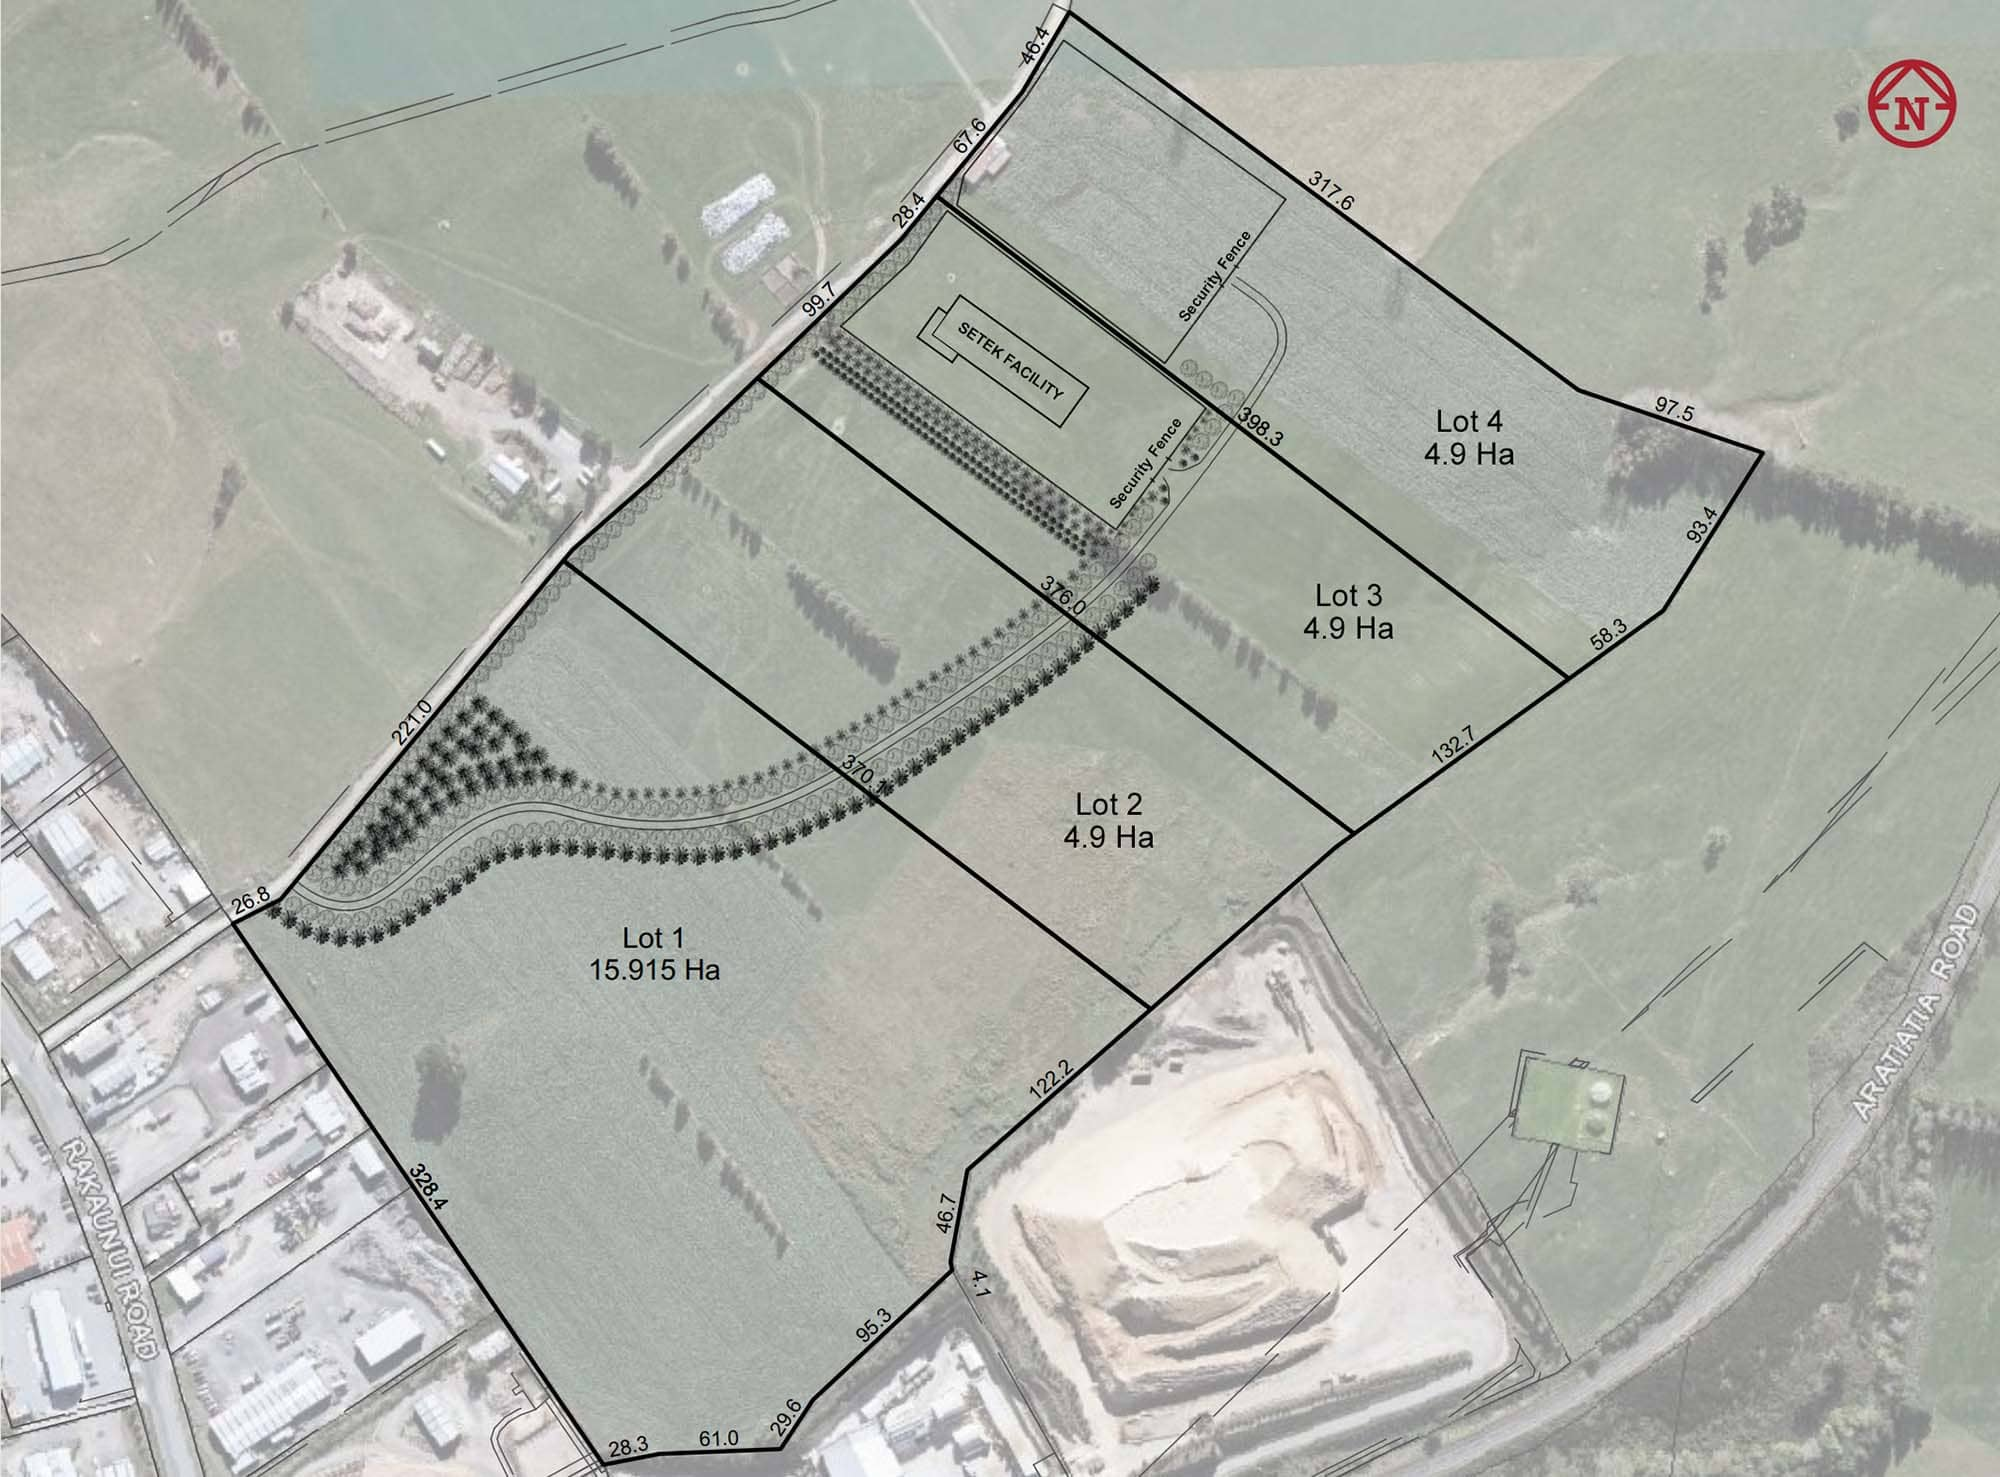 A proposed subdivision map of the new Setek facility.